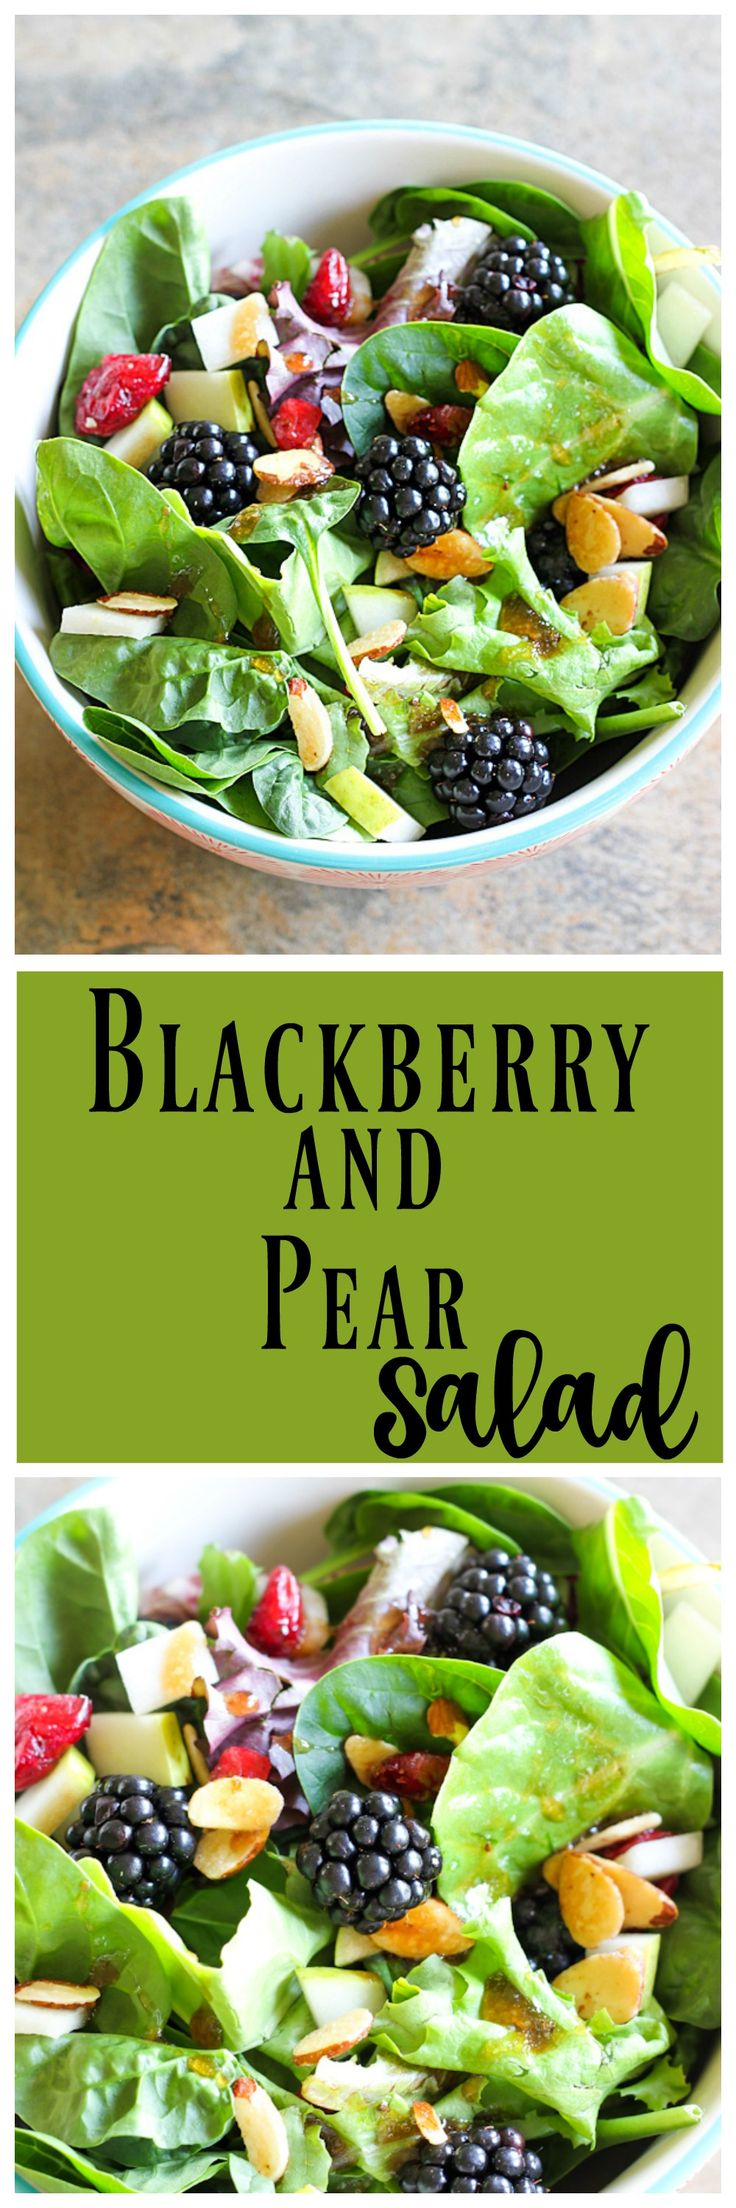 Blackberry and Pear Salad is a delicious salad to ease into Fall. Use up the last of the seasonal blackberries and greens with some pears that are coming on.